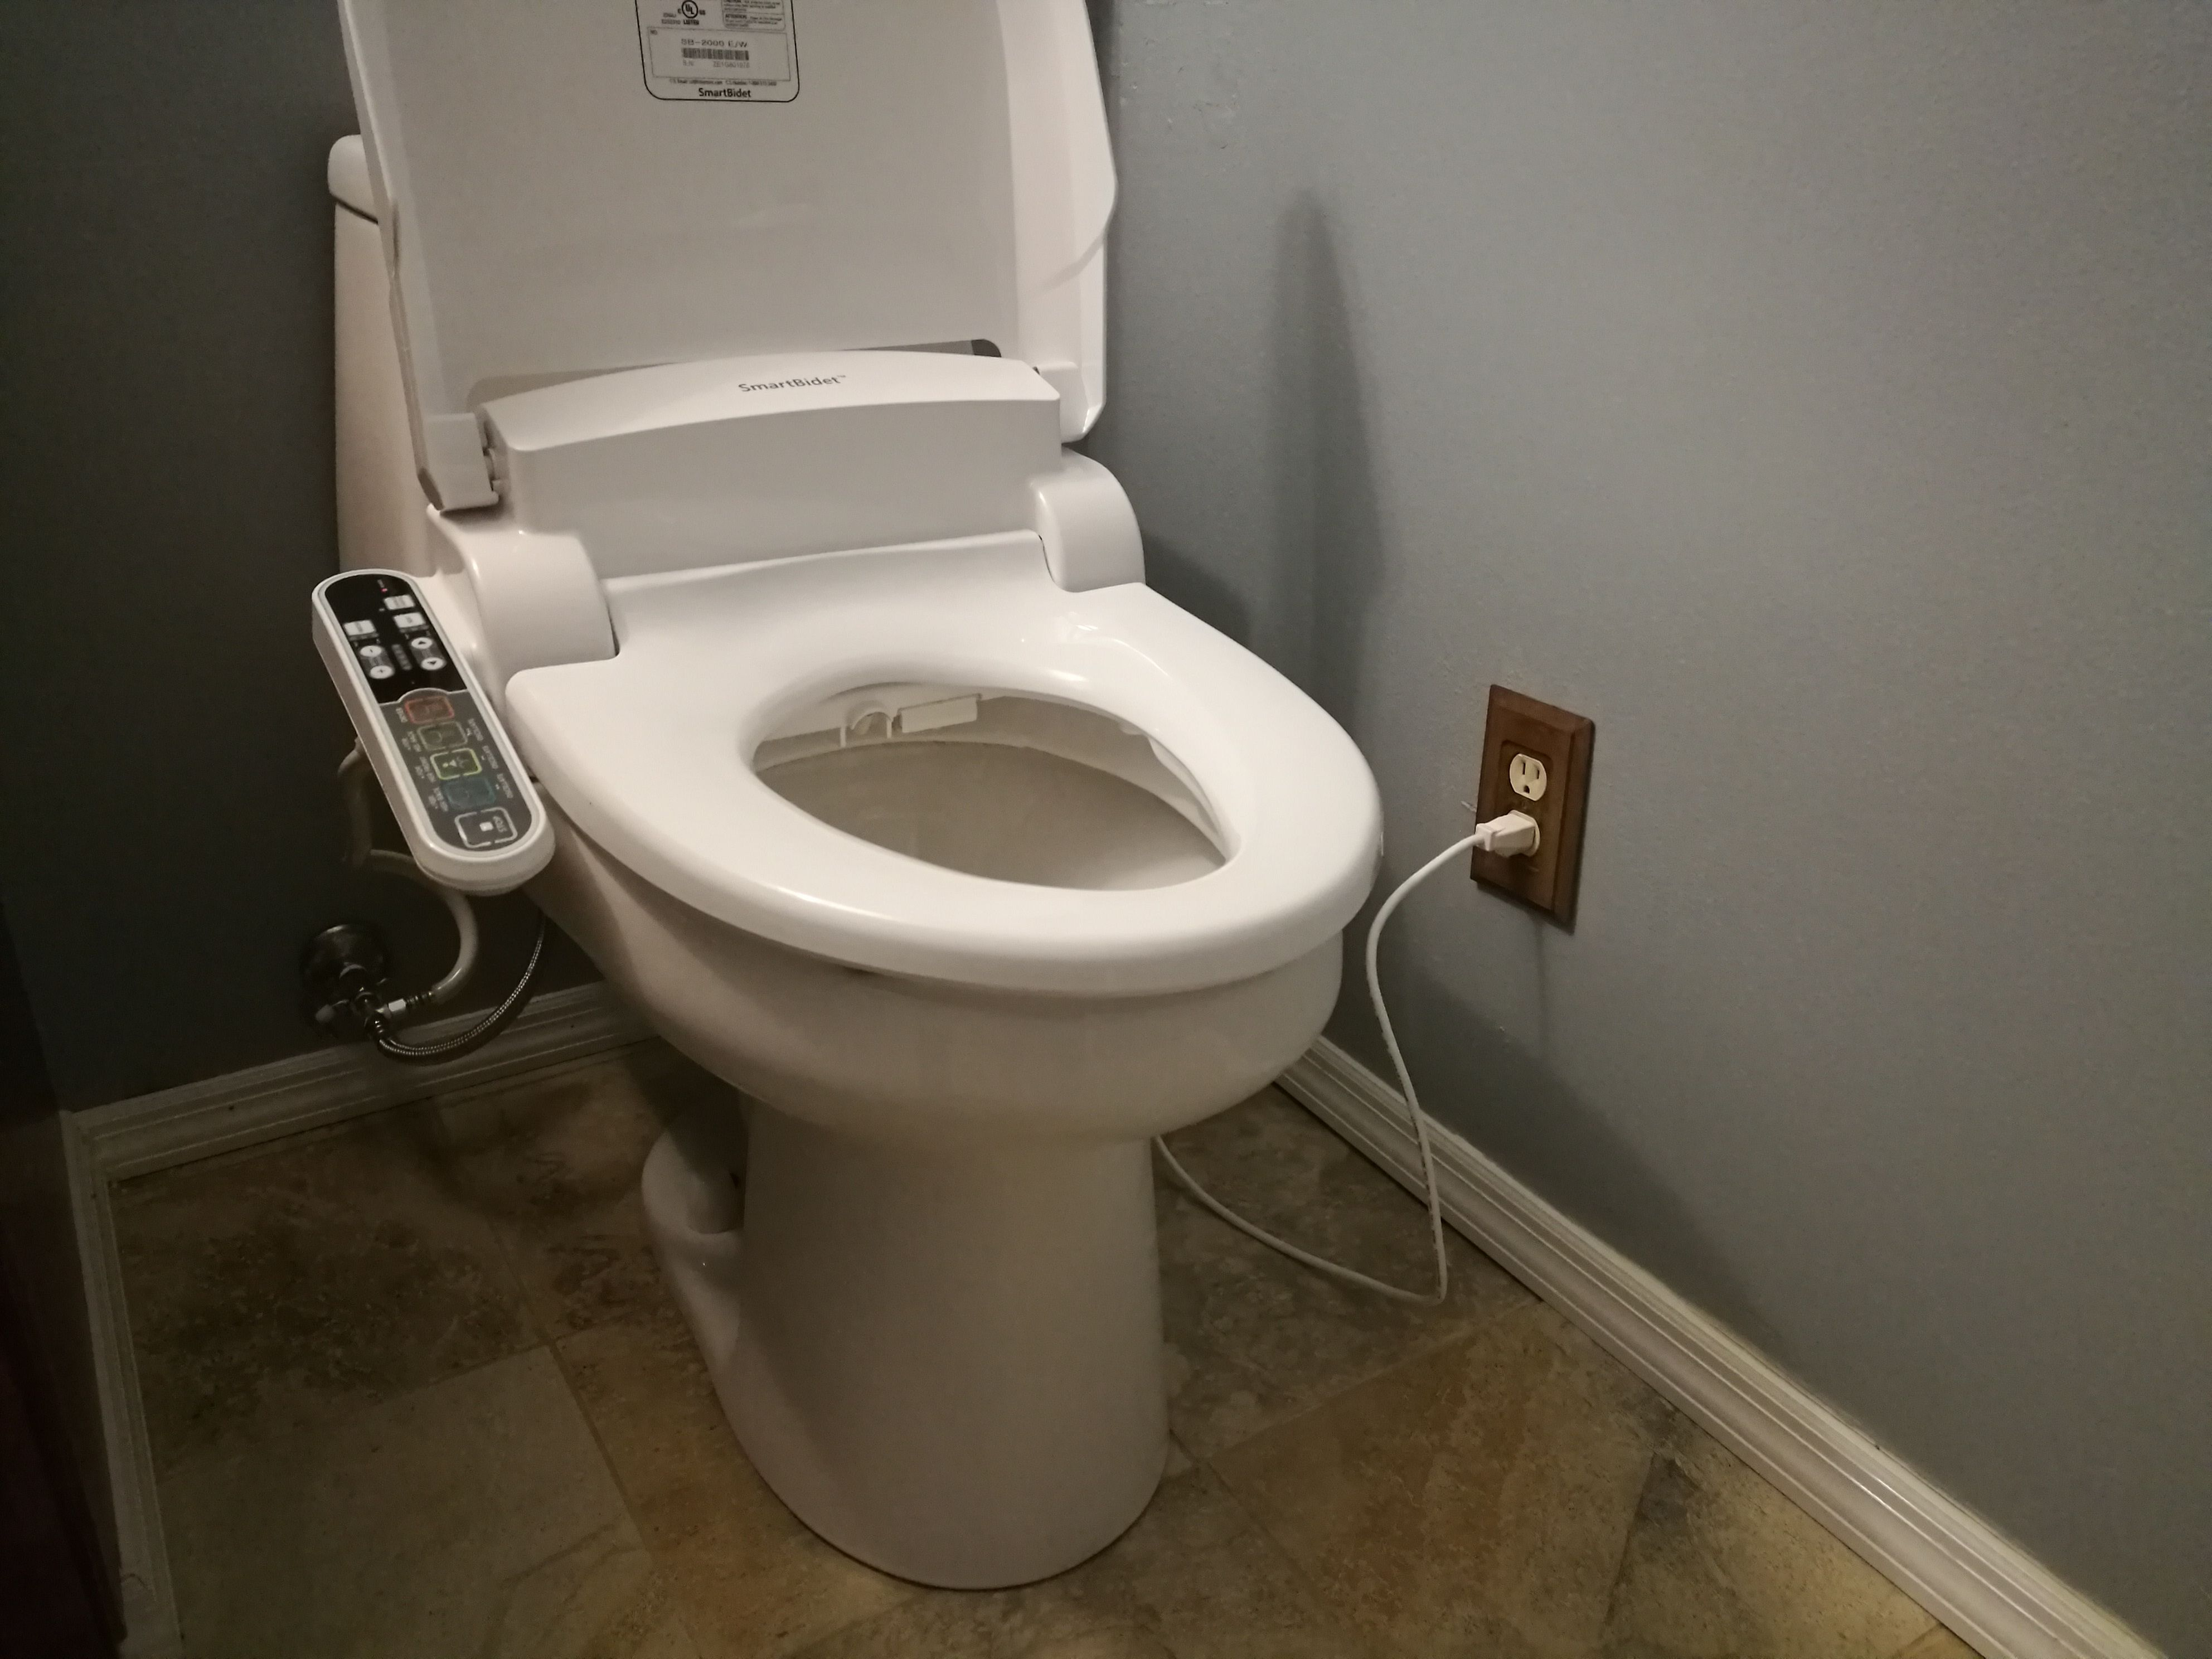 Diy Install Electrical Toilet Seat Add Some Comfort That You Can Feel Project Shared On The Handymobi App With Images Bidet Toilet Toilet Seat